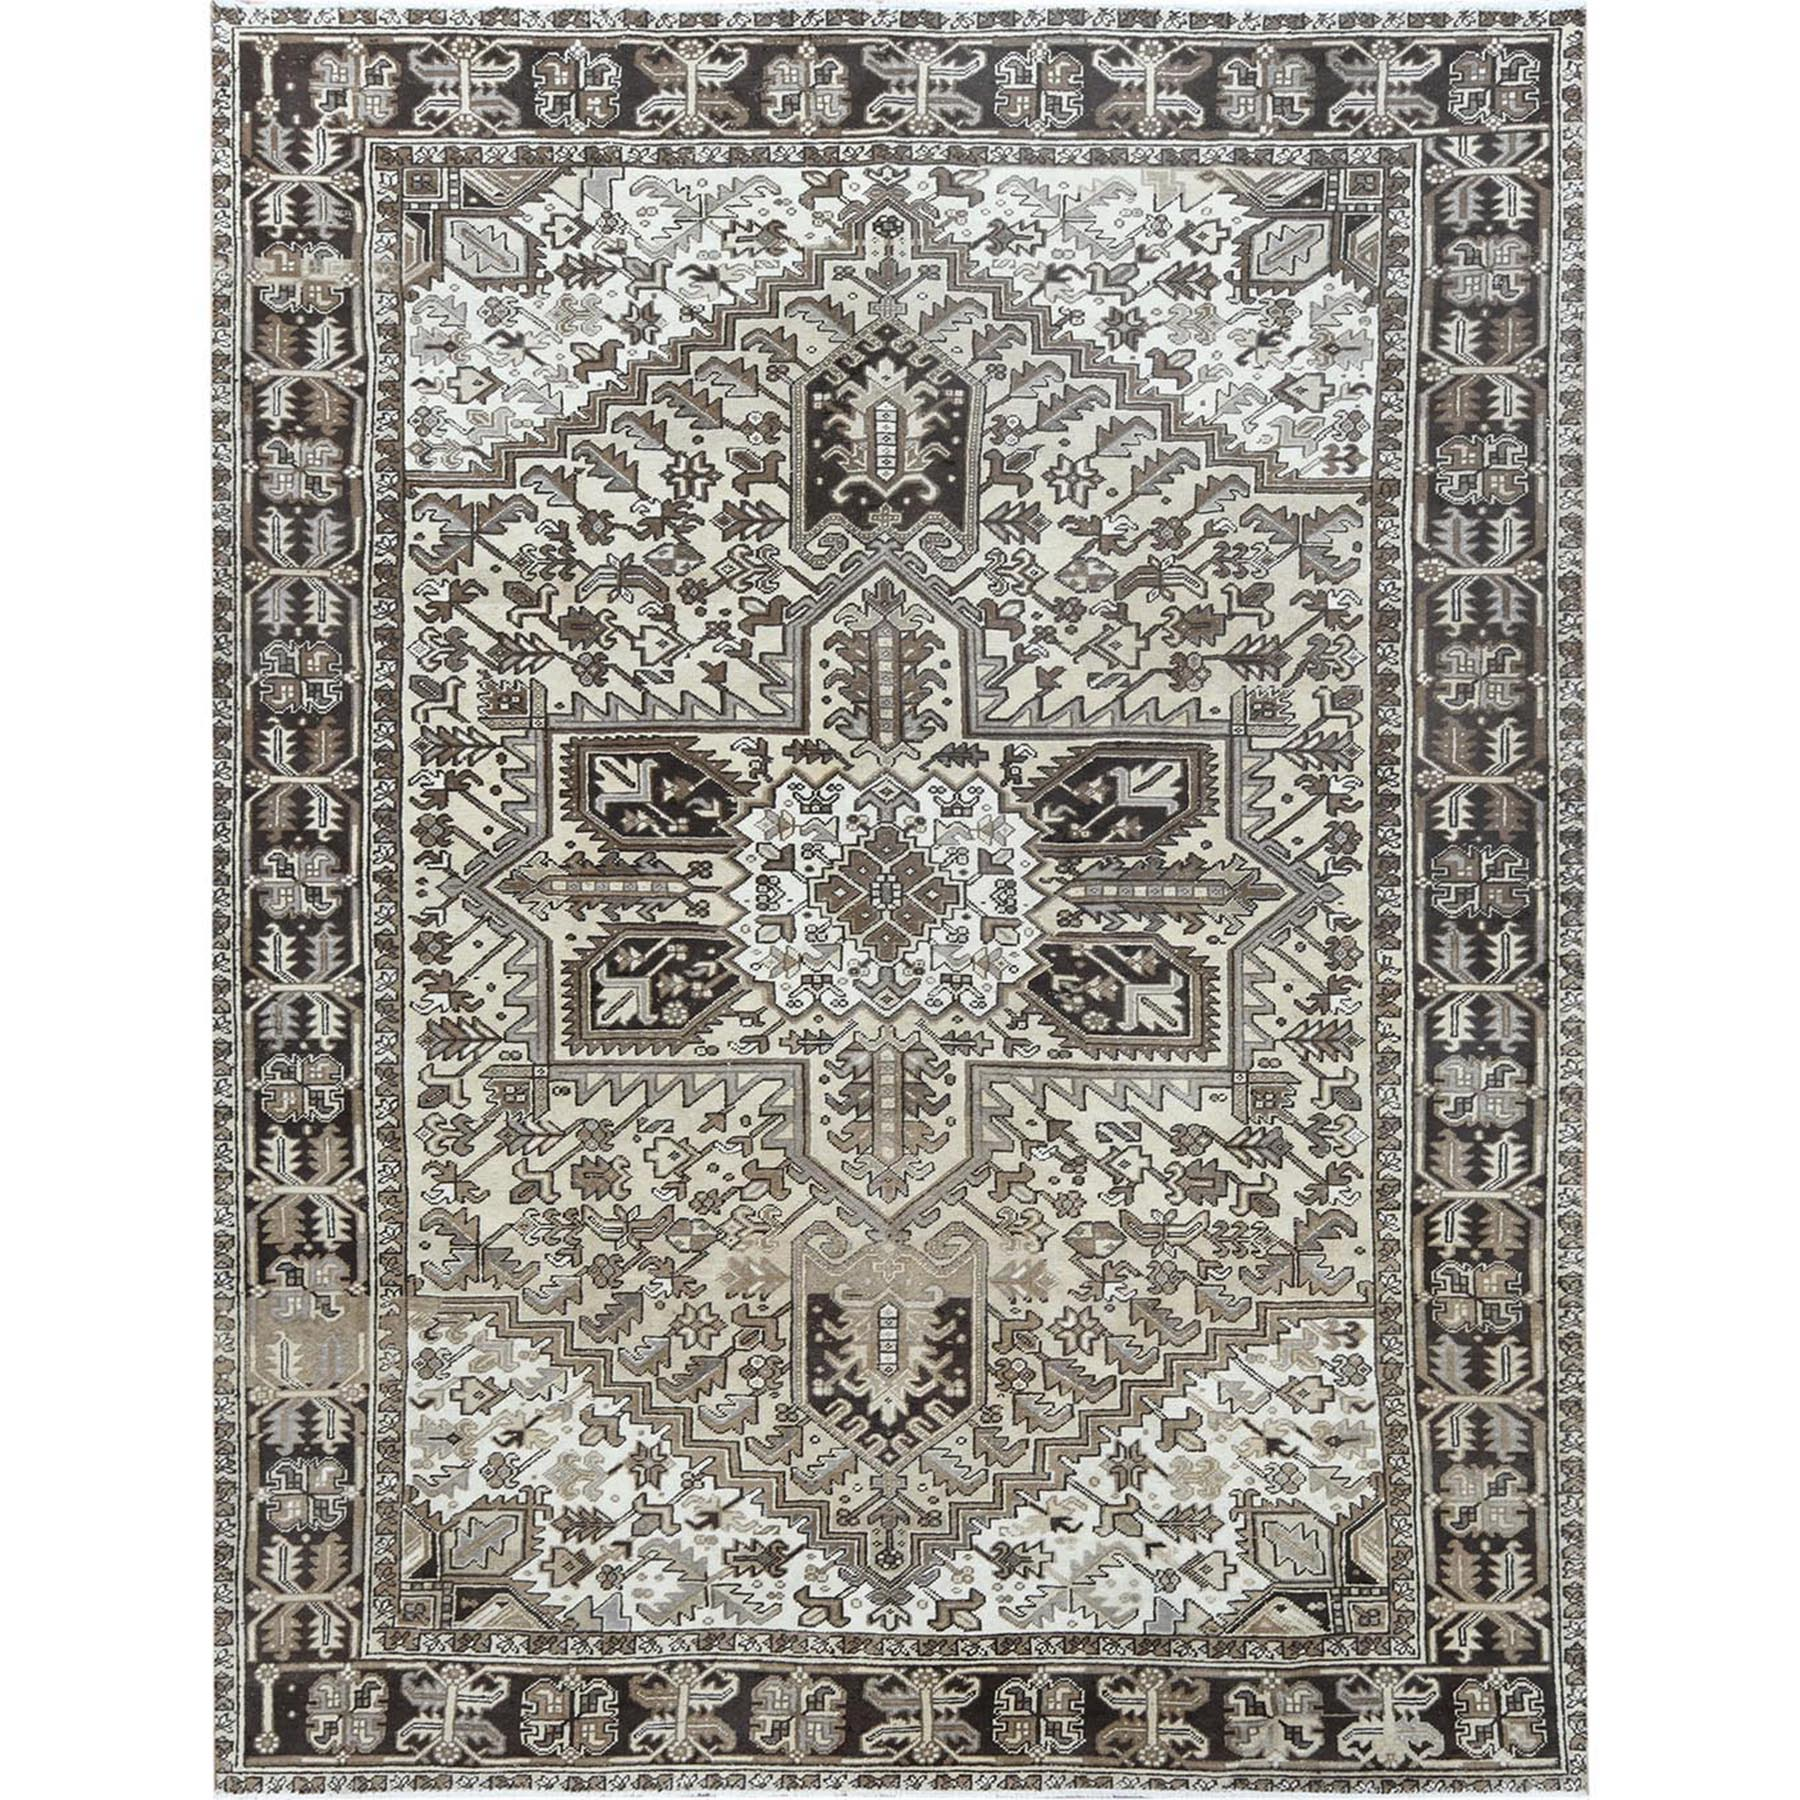 HerizRugs ORC541611